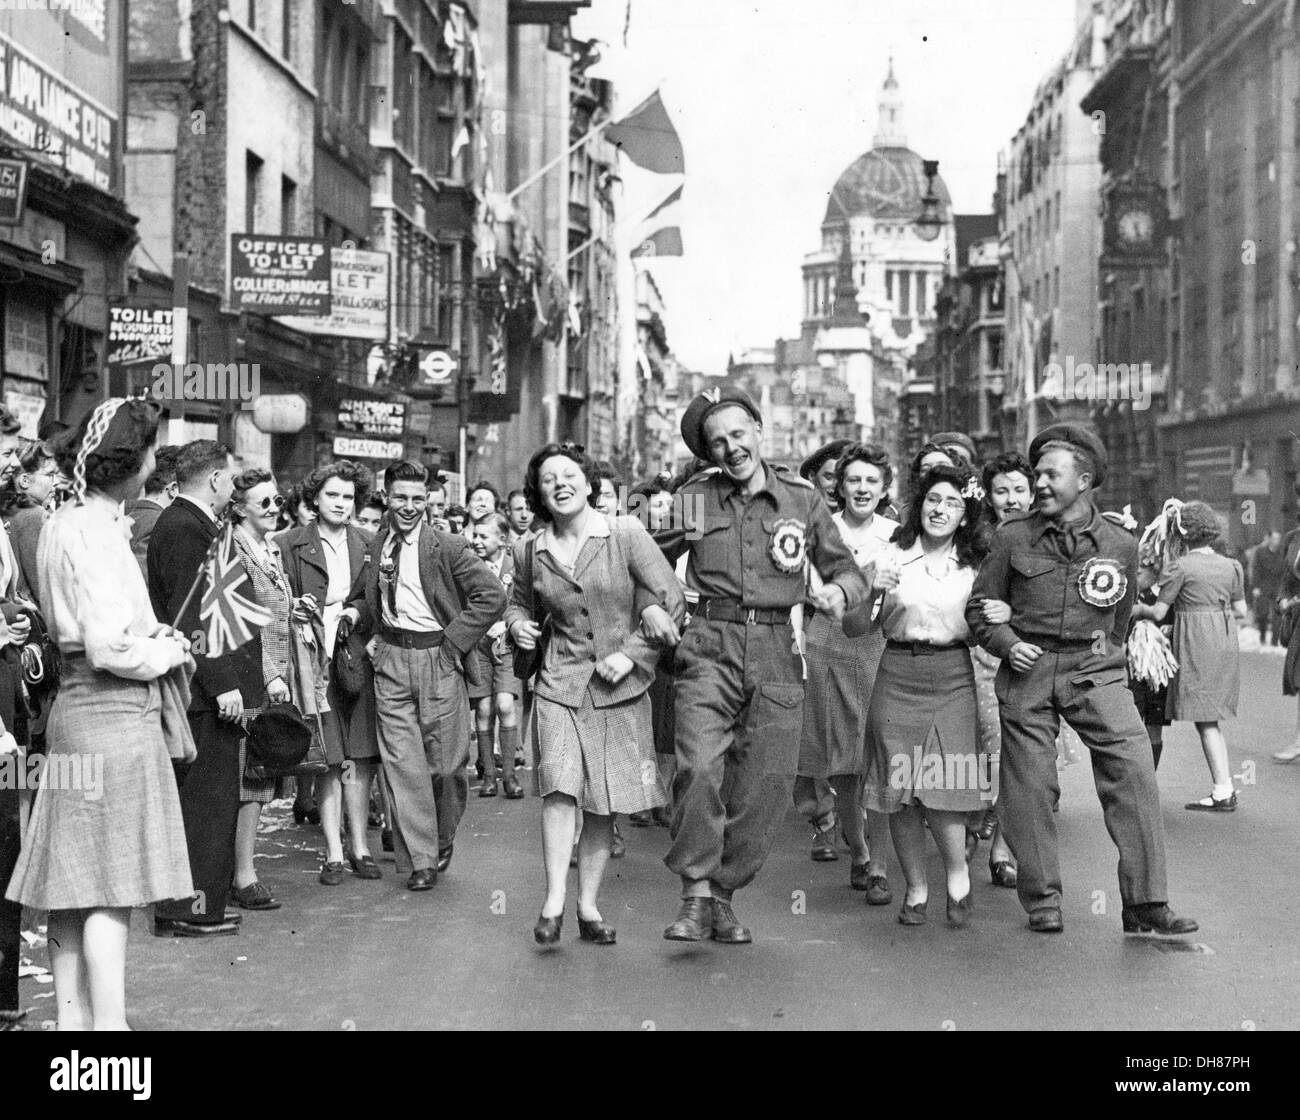 VE Day in London 1945 - Stock Image